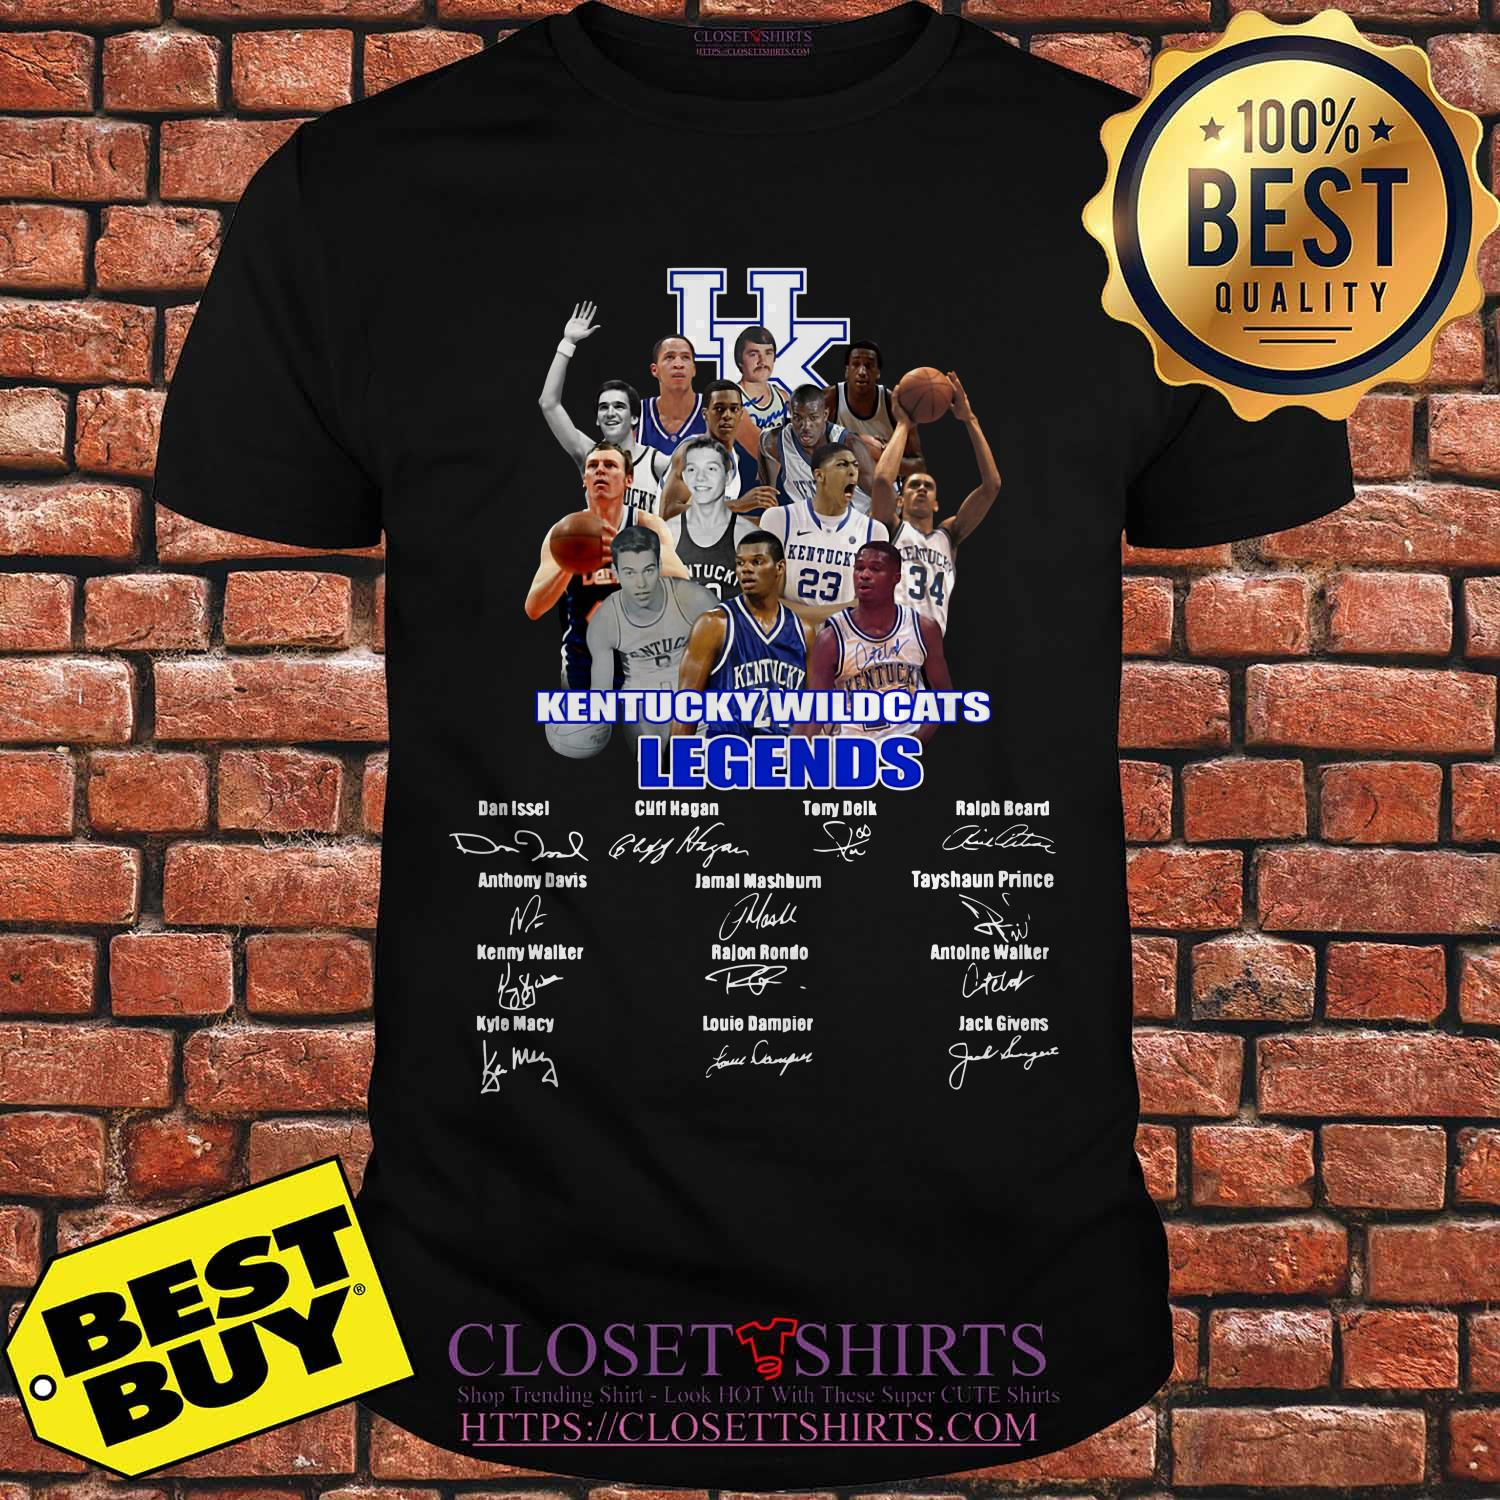 Kentucky Wildcats Legends Signature Shirt